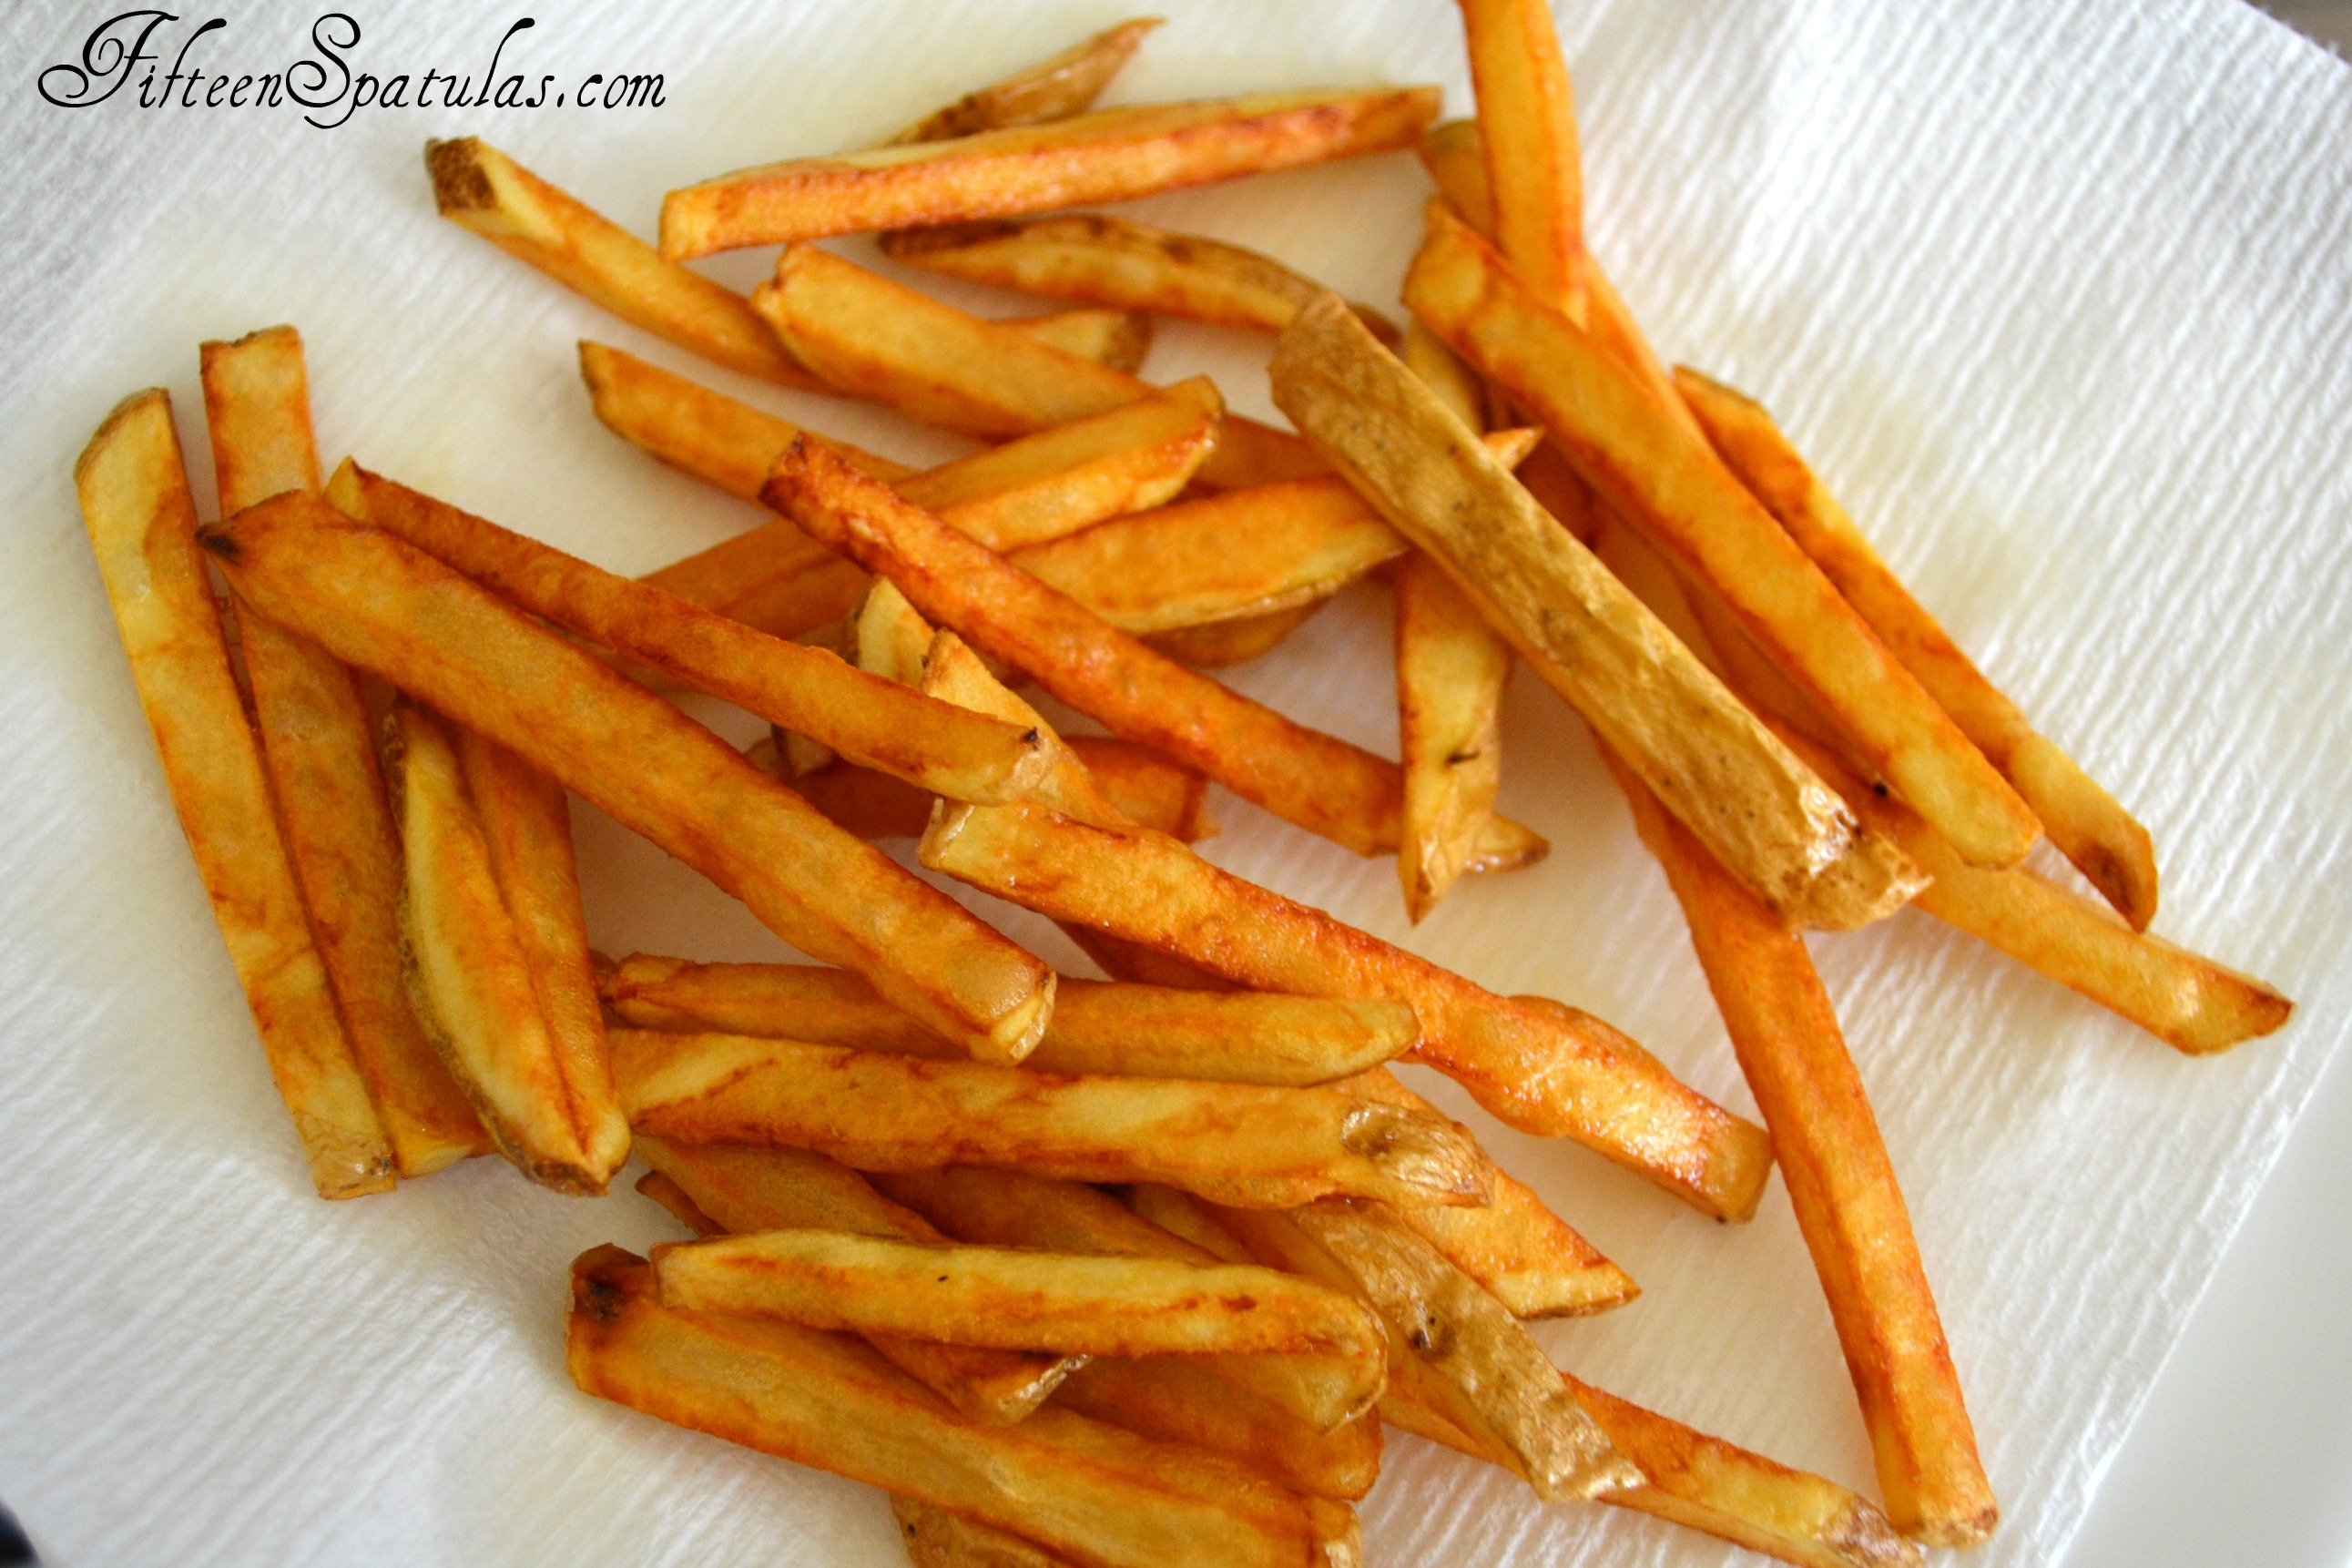 ... french fries crispy baked french fries perfect thin and crispy french